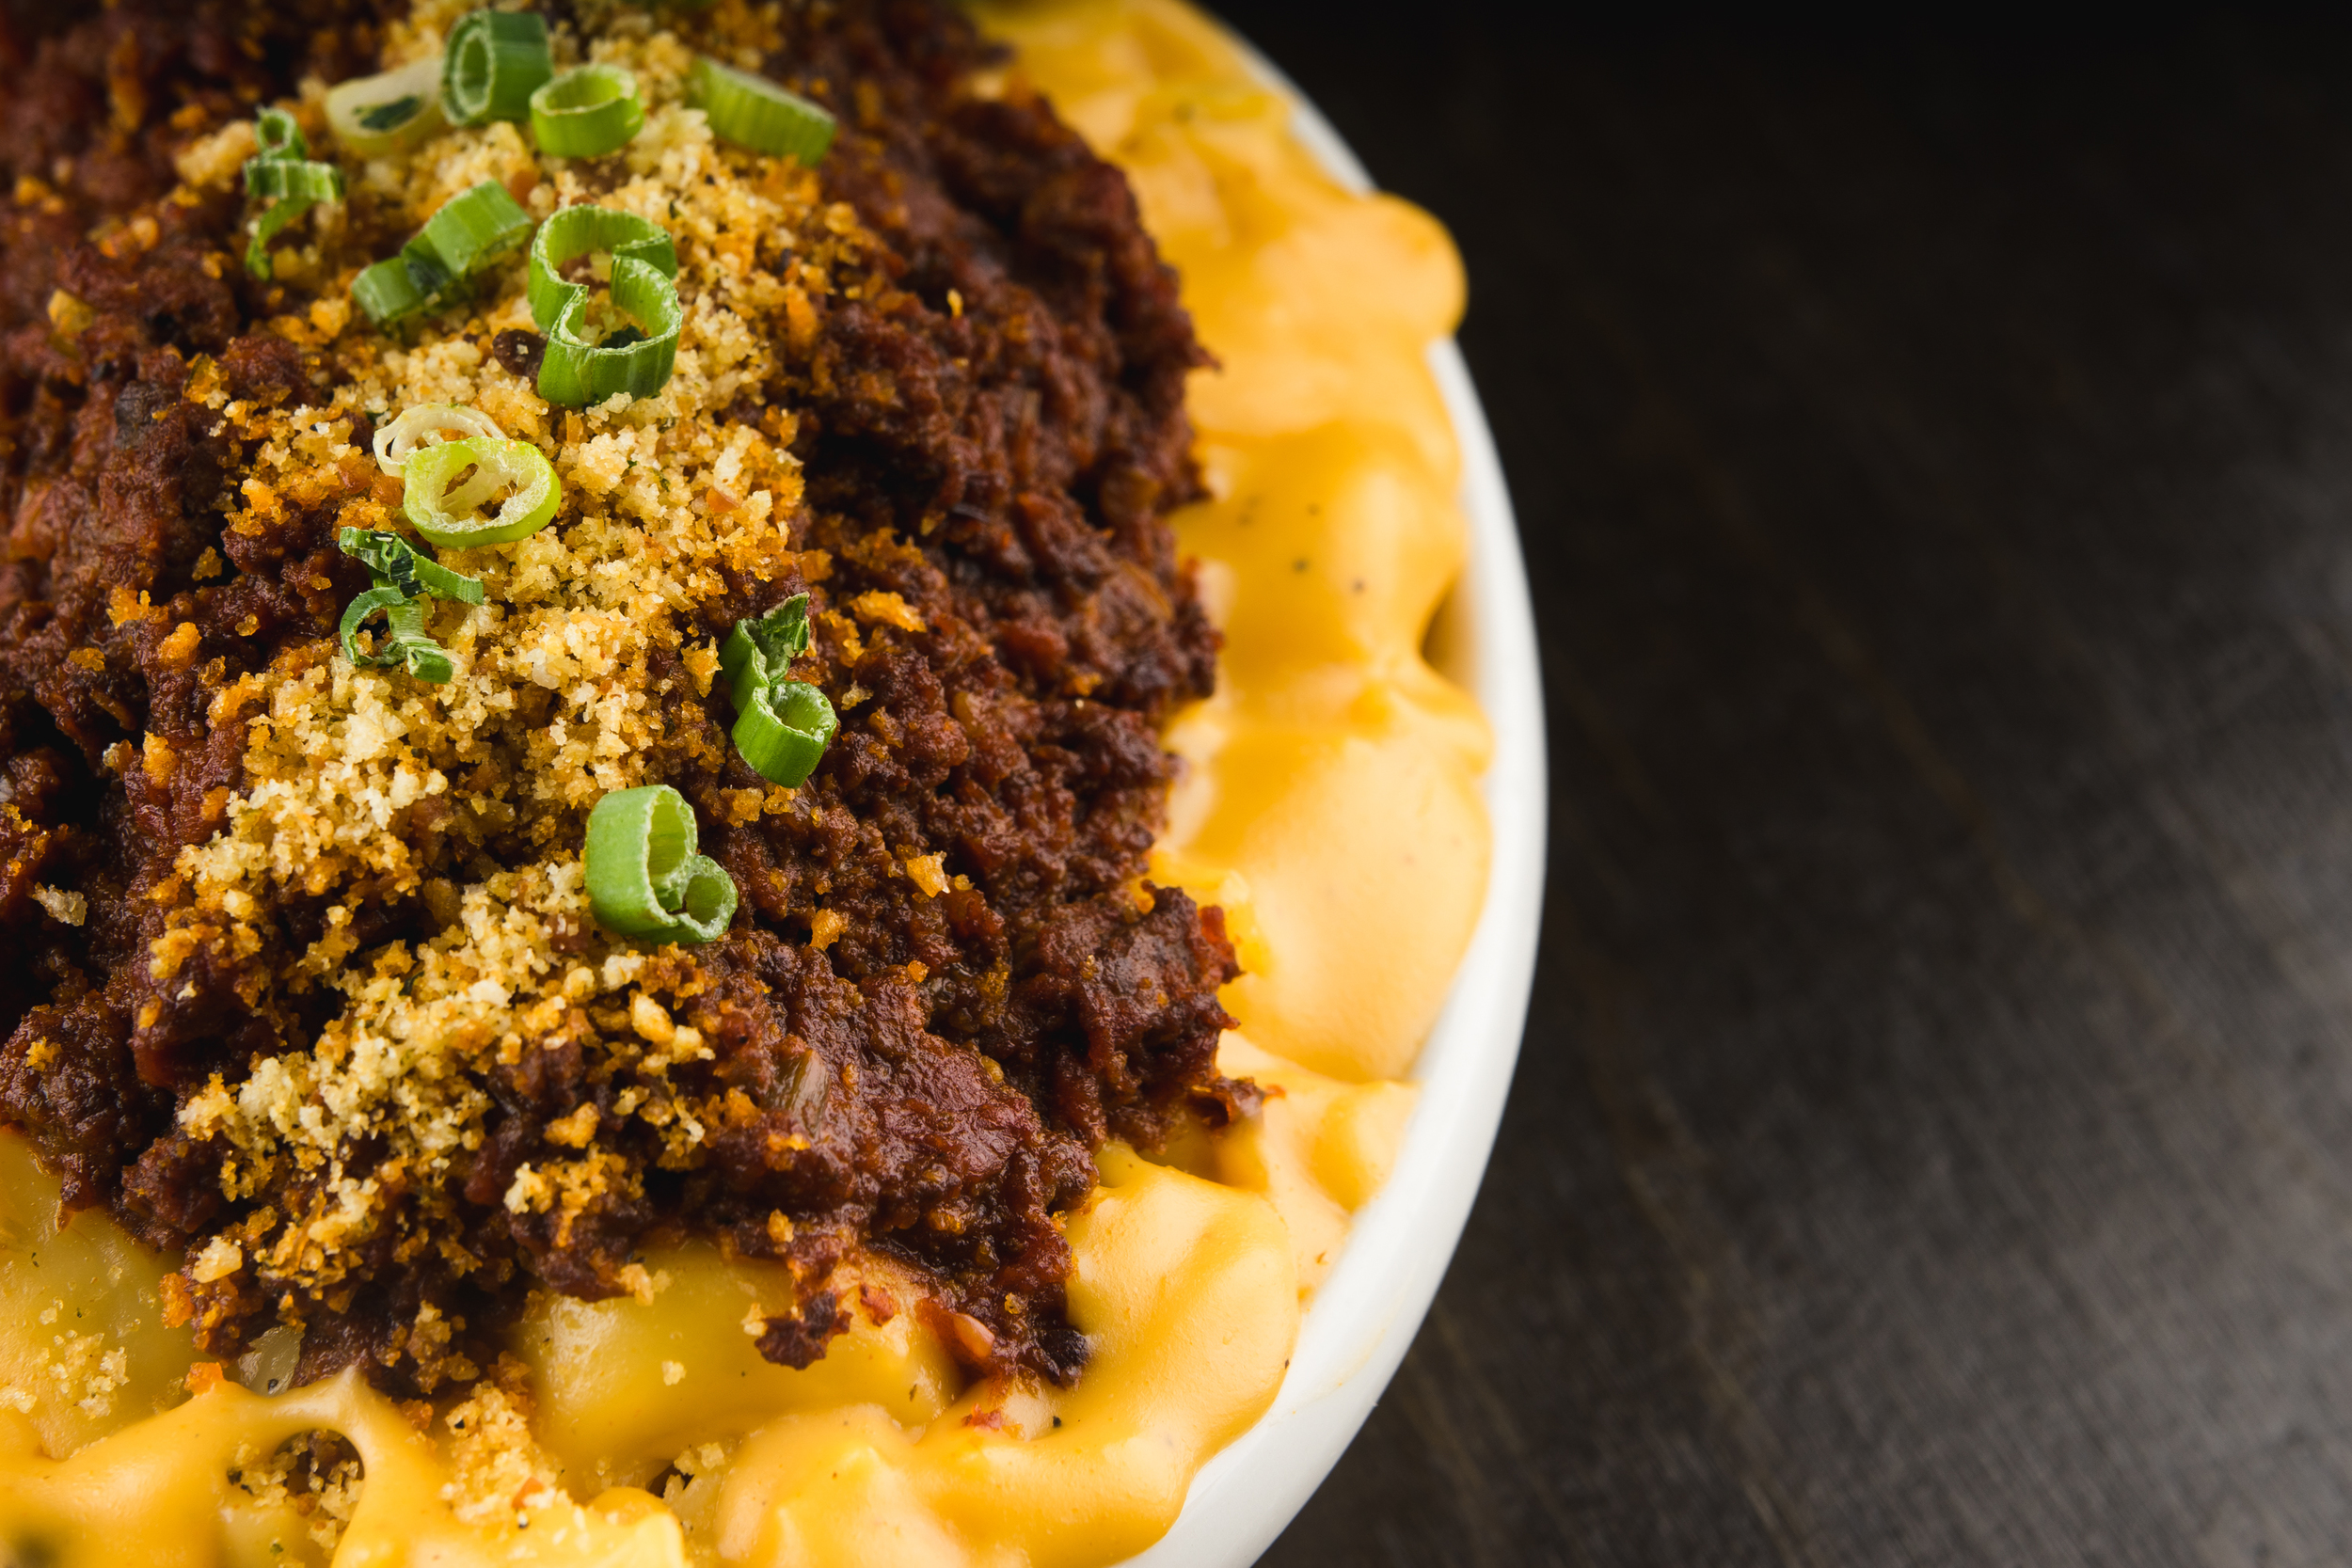 CHILI MAC n' CHEESE